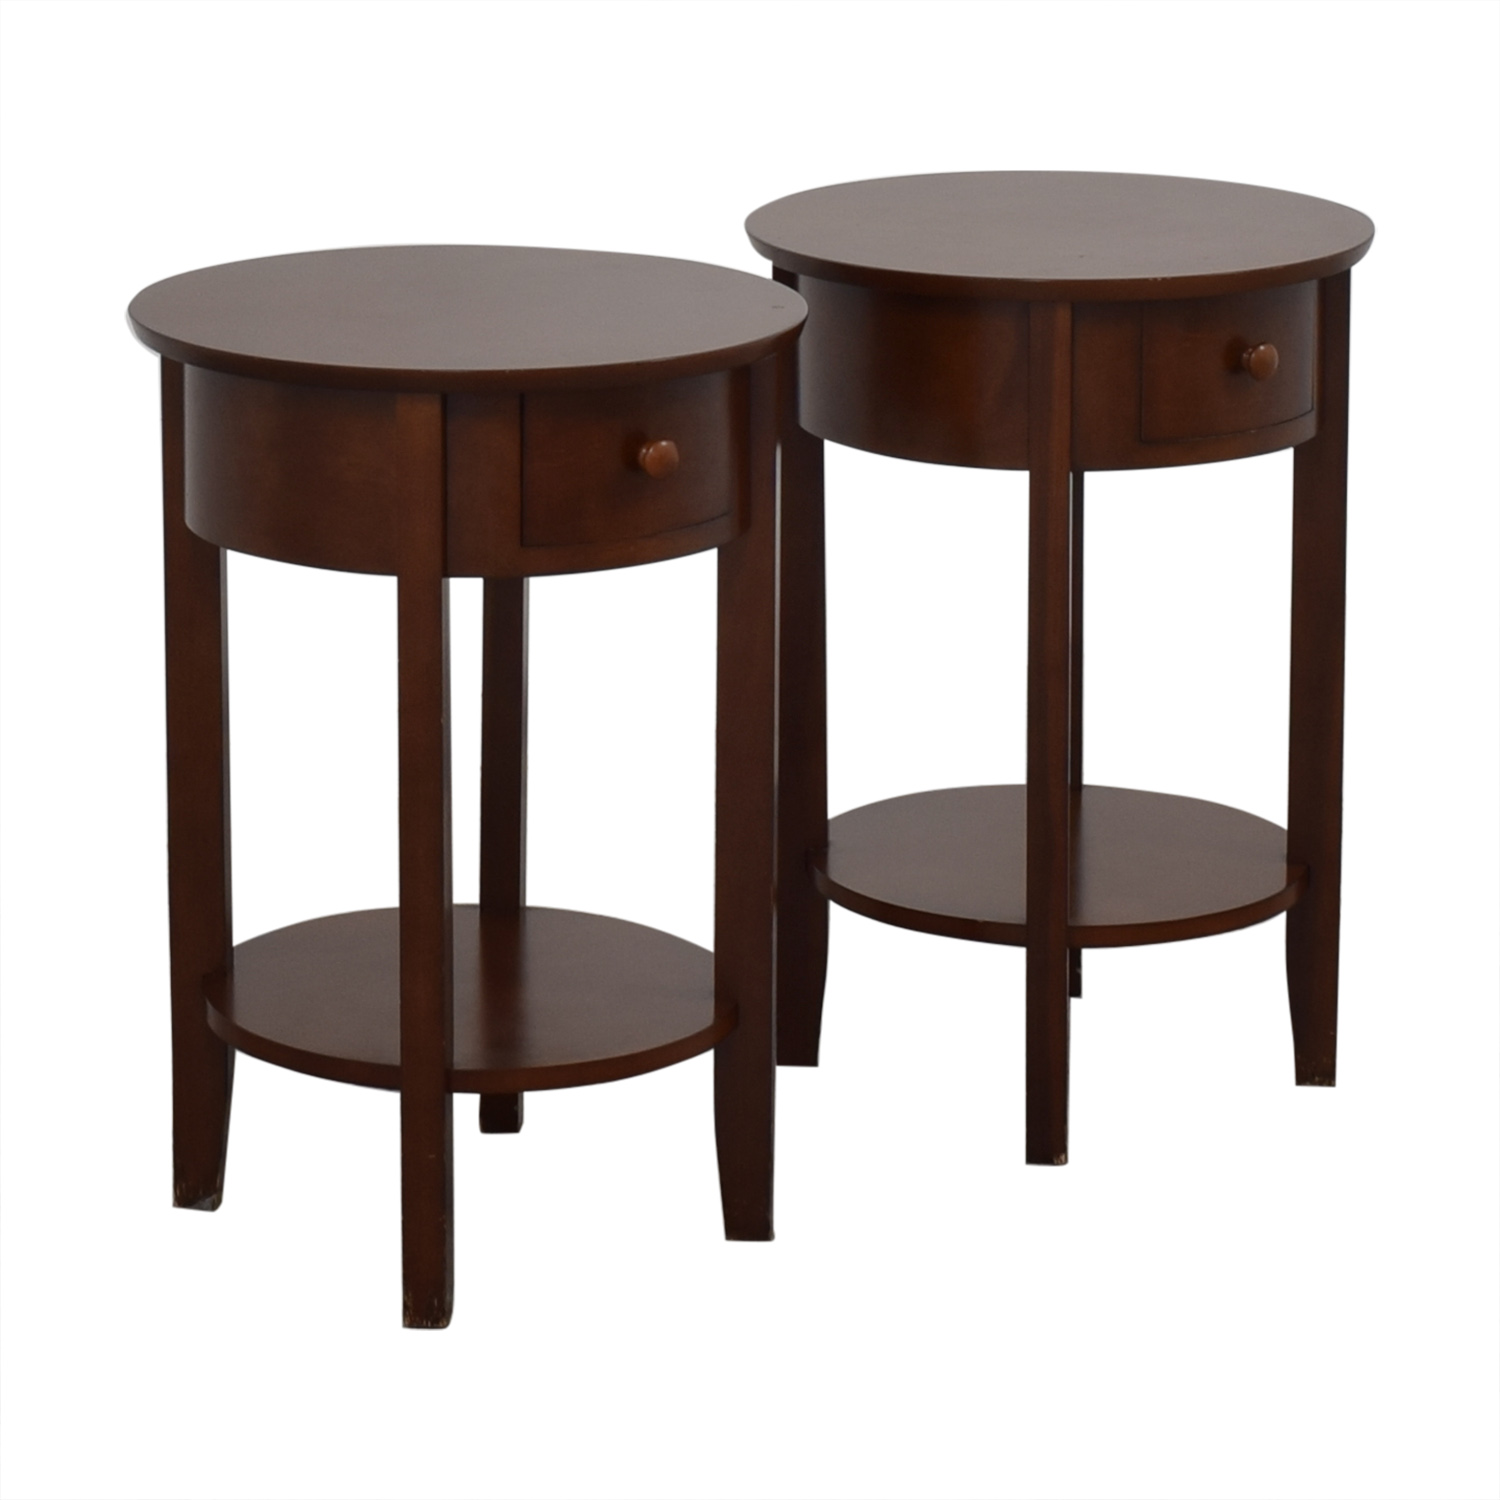 shop Pottery Barn Pottery Barn Oval Nightstands online